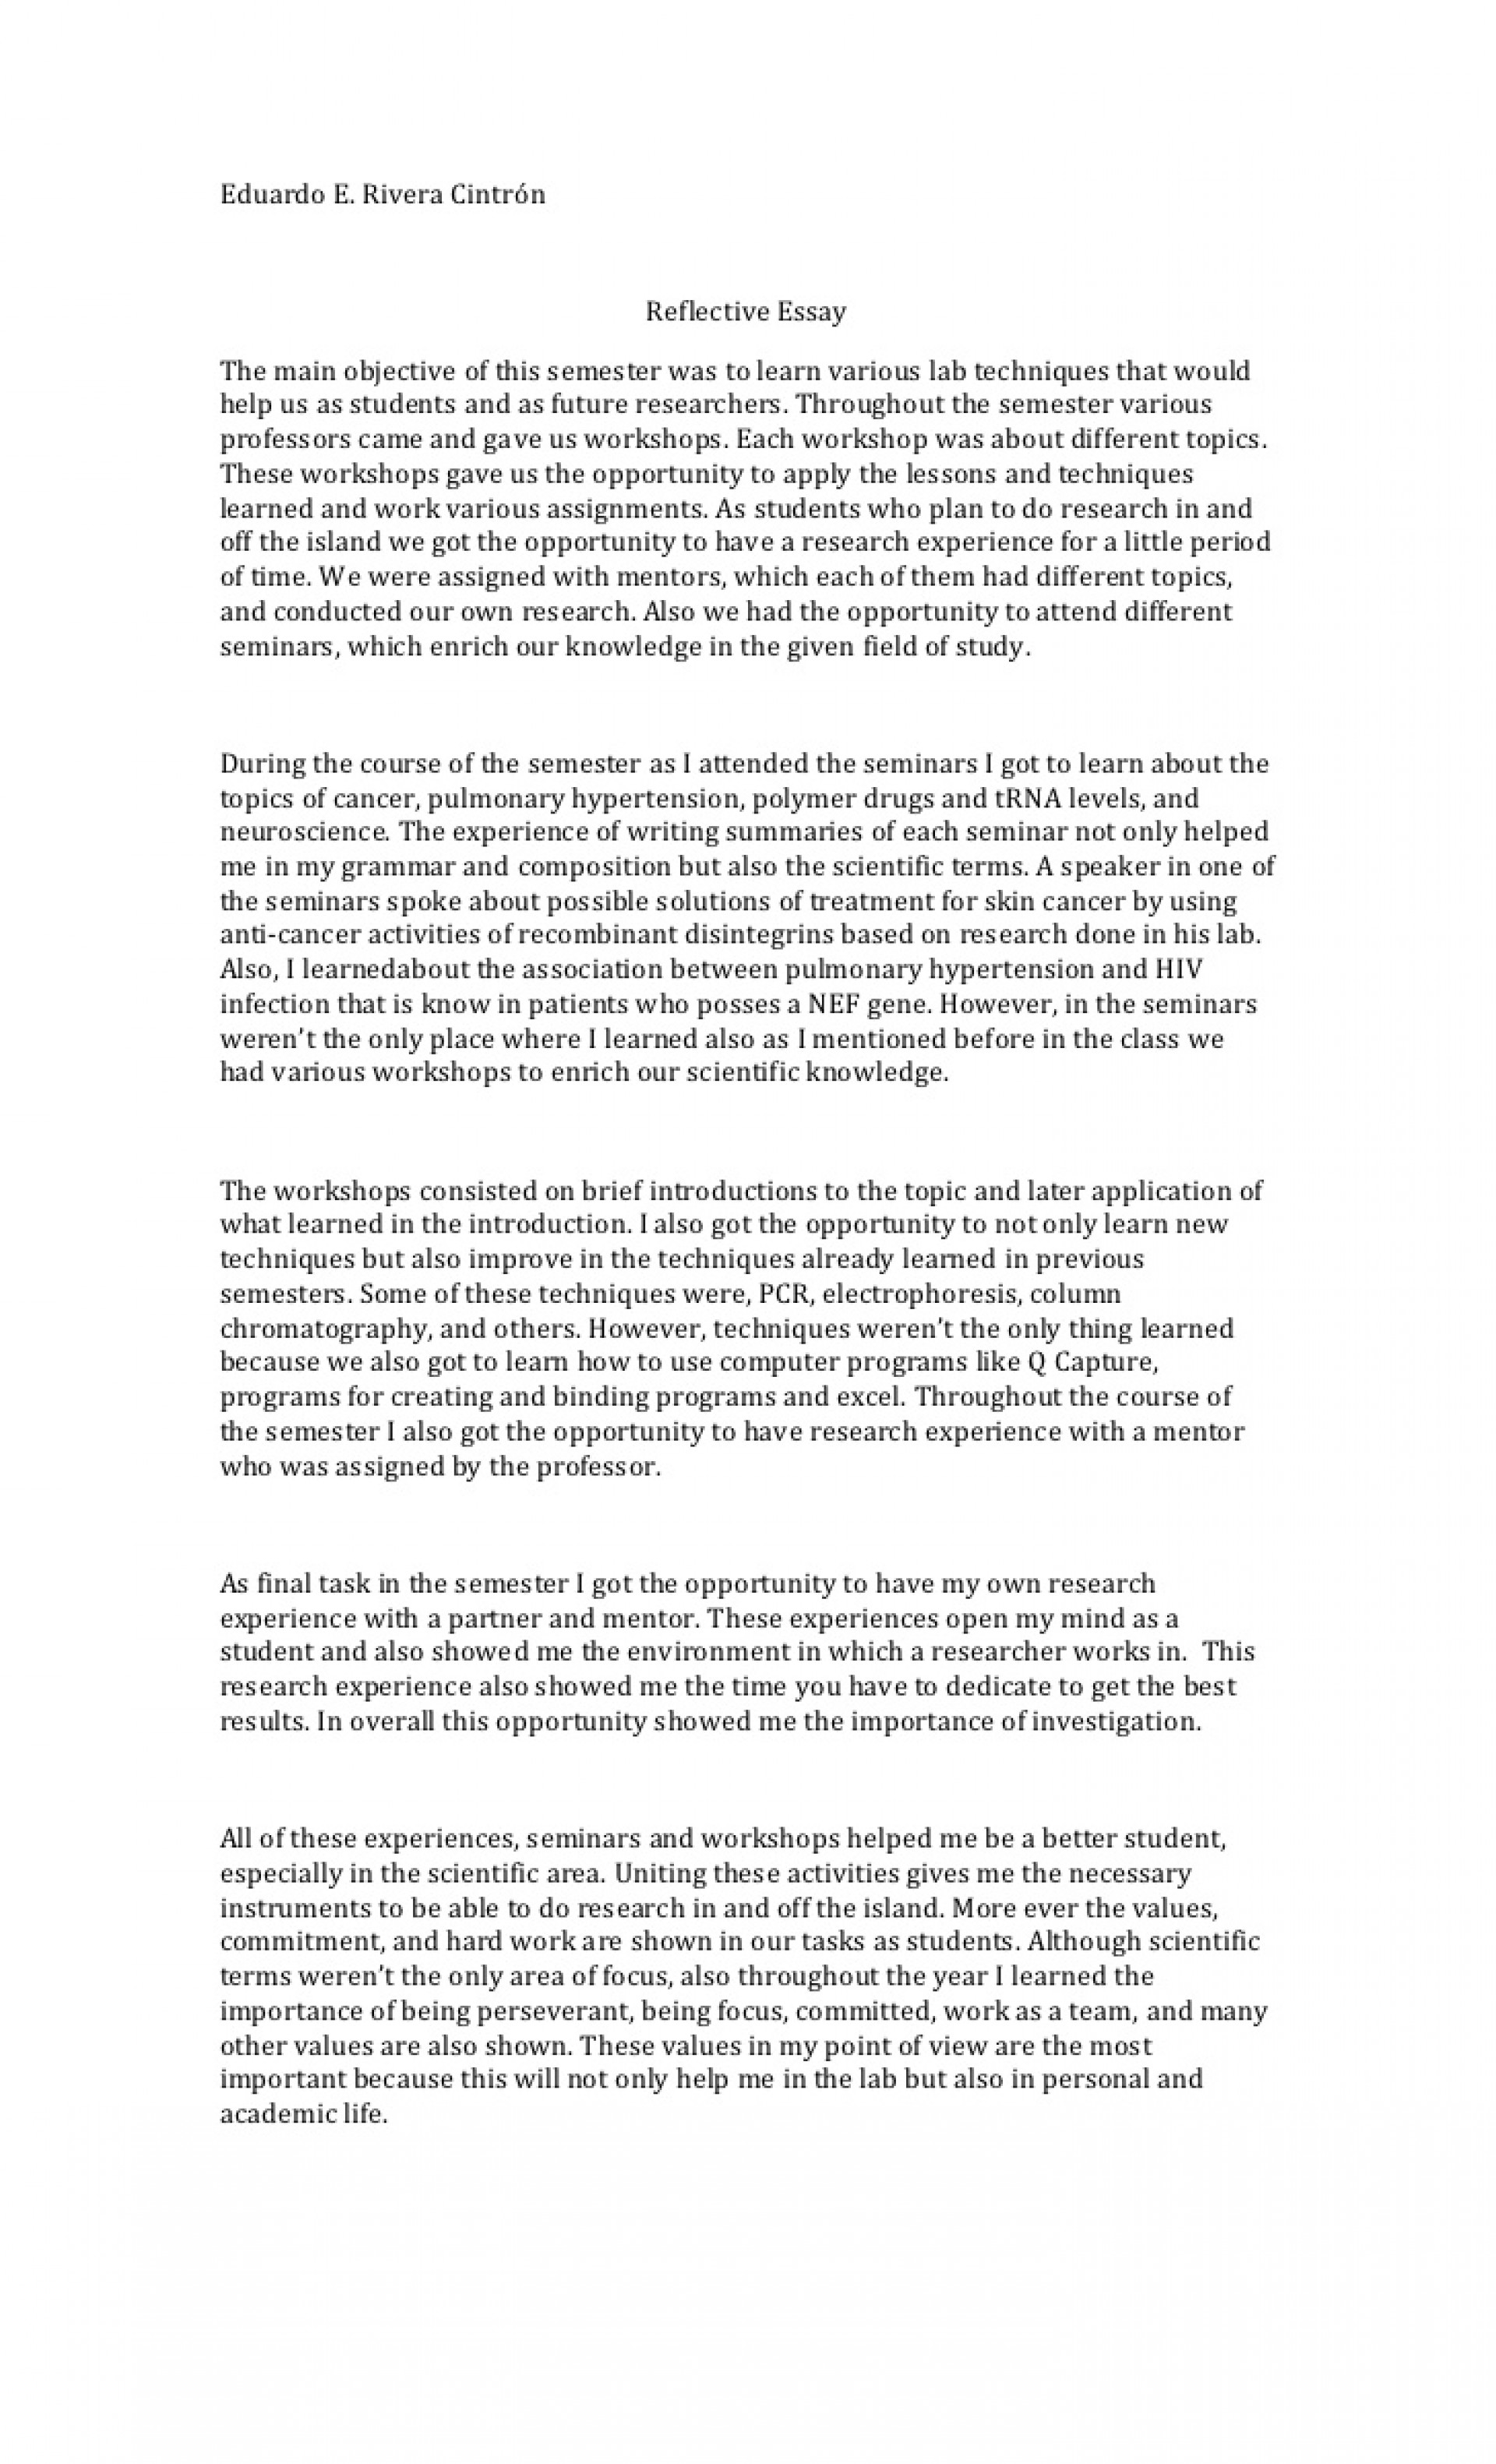 016 Essay Example How To Start Reflective Introduction Course Surprising A Write An 1920